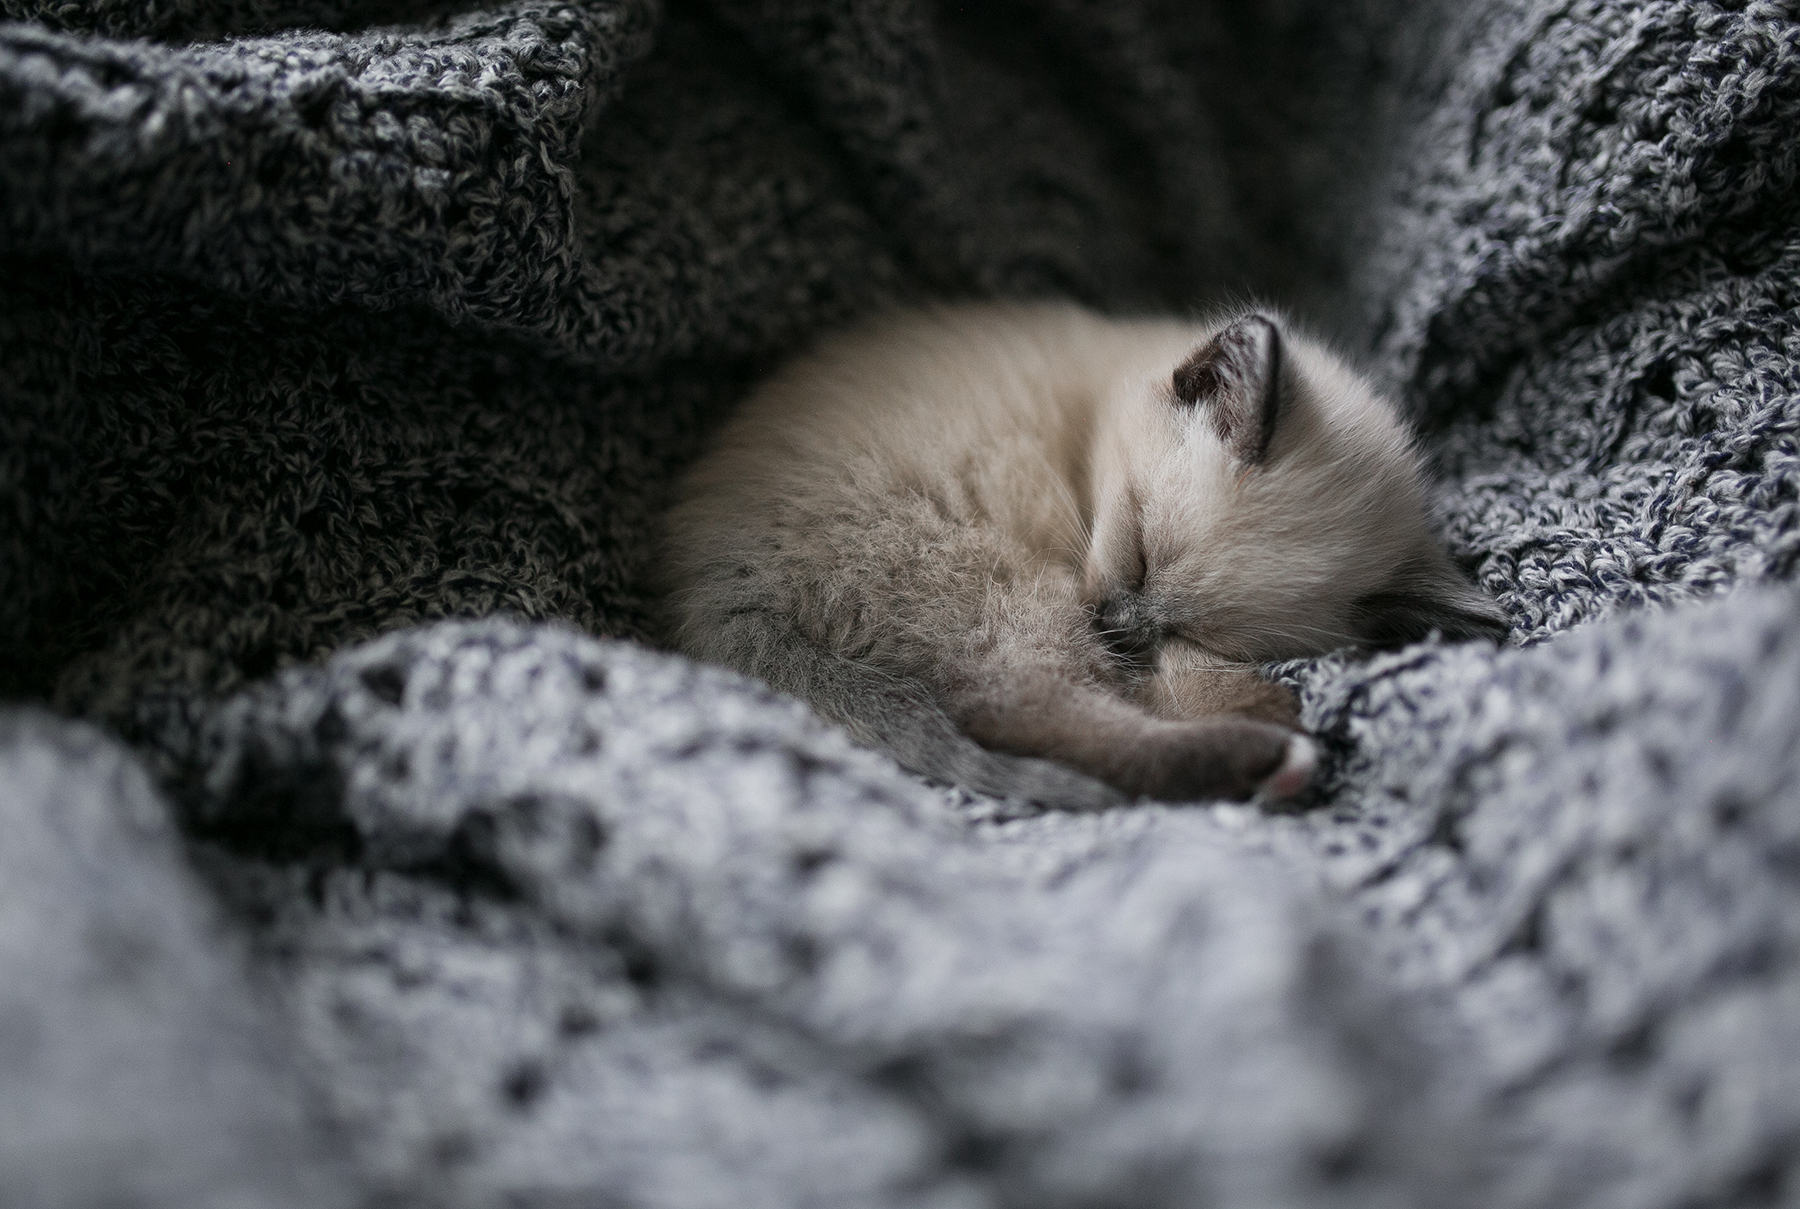 Blue point Siamese kitten sleeping in gray blankets